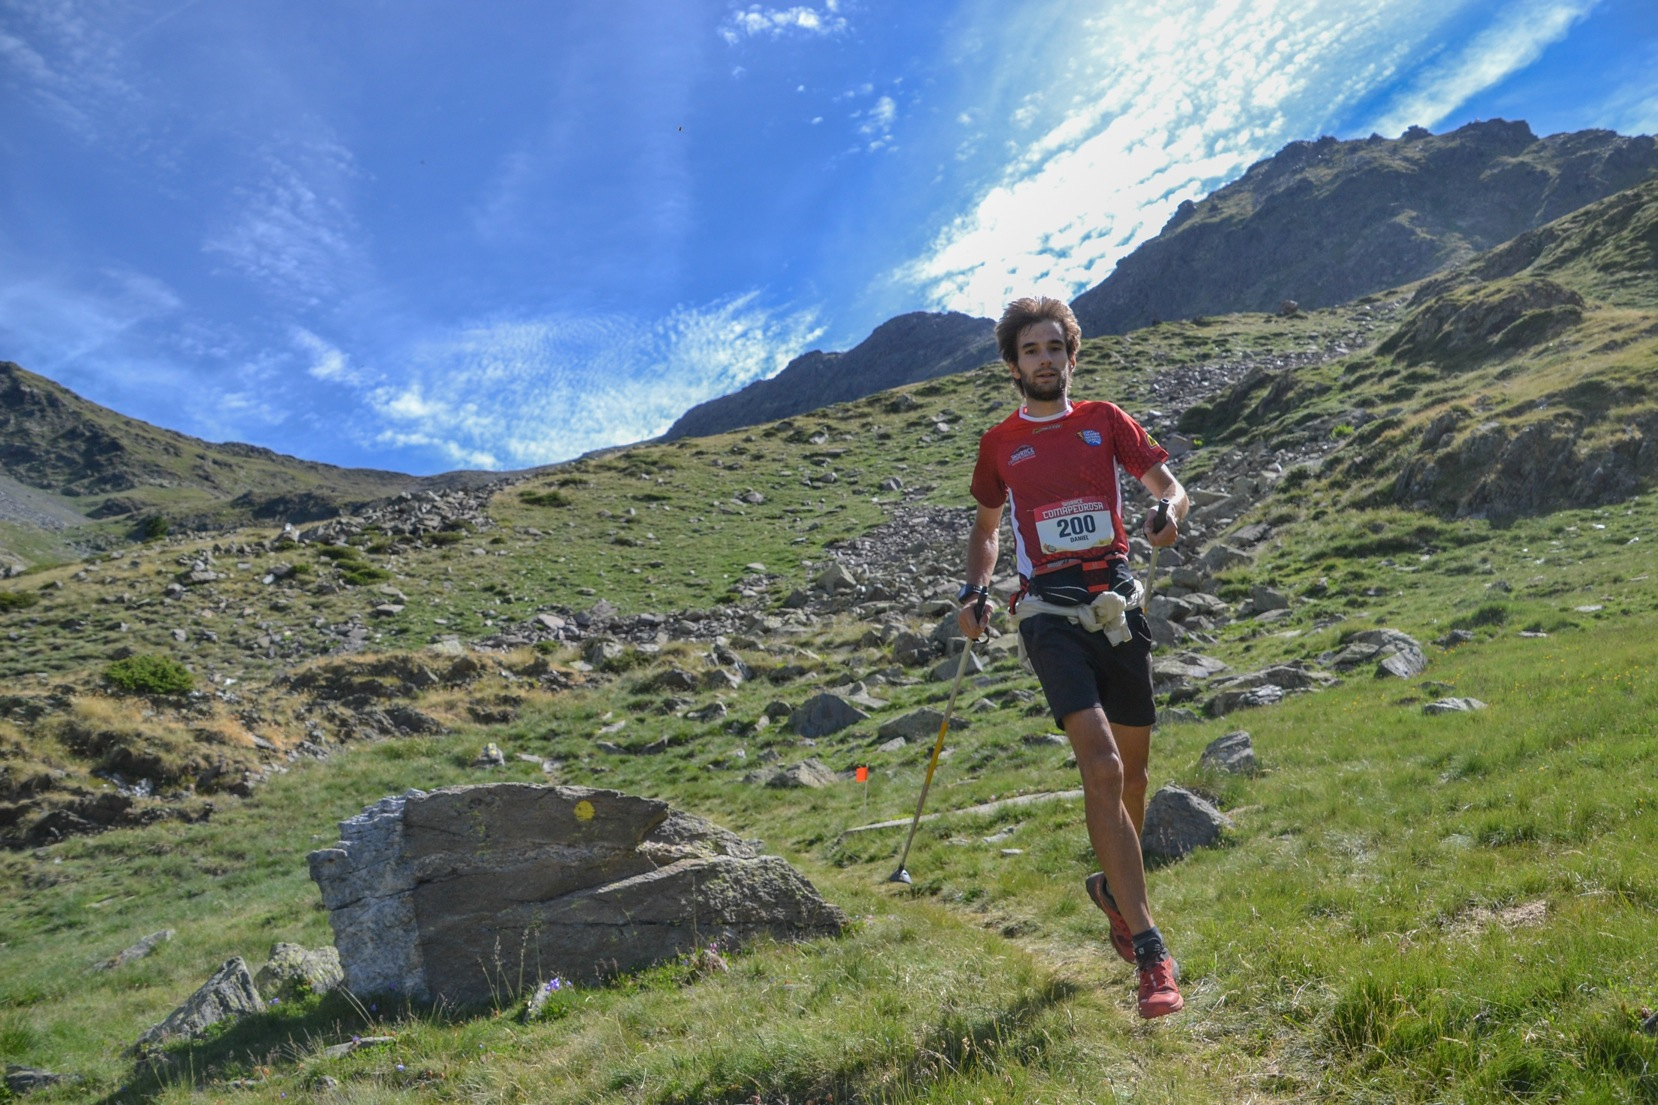 L'SkyRace Comapedrosa serà puntuable per a les World Series de la International Skyrunning Federation